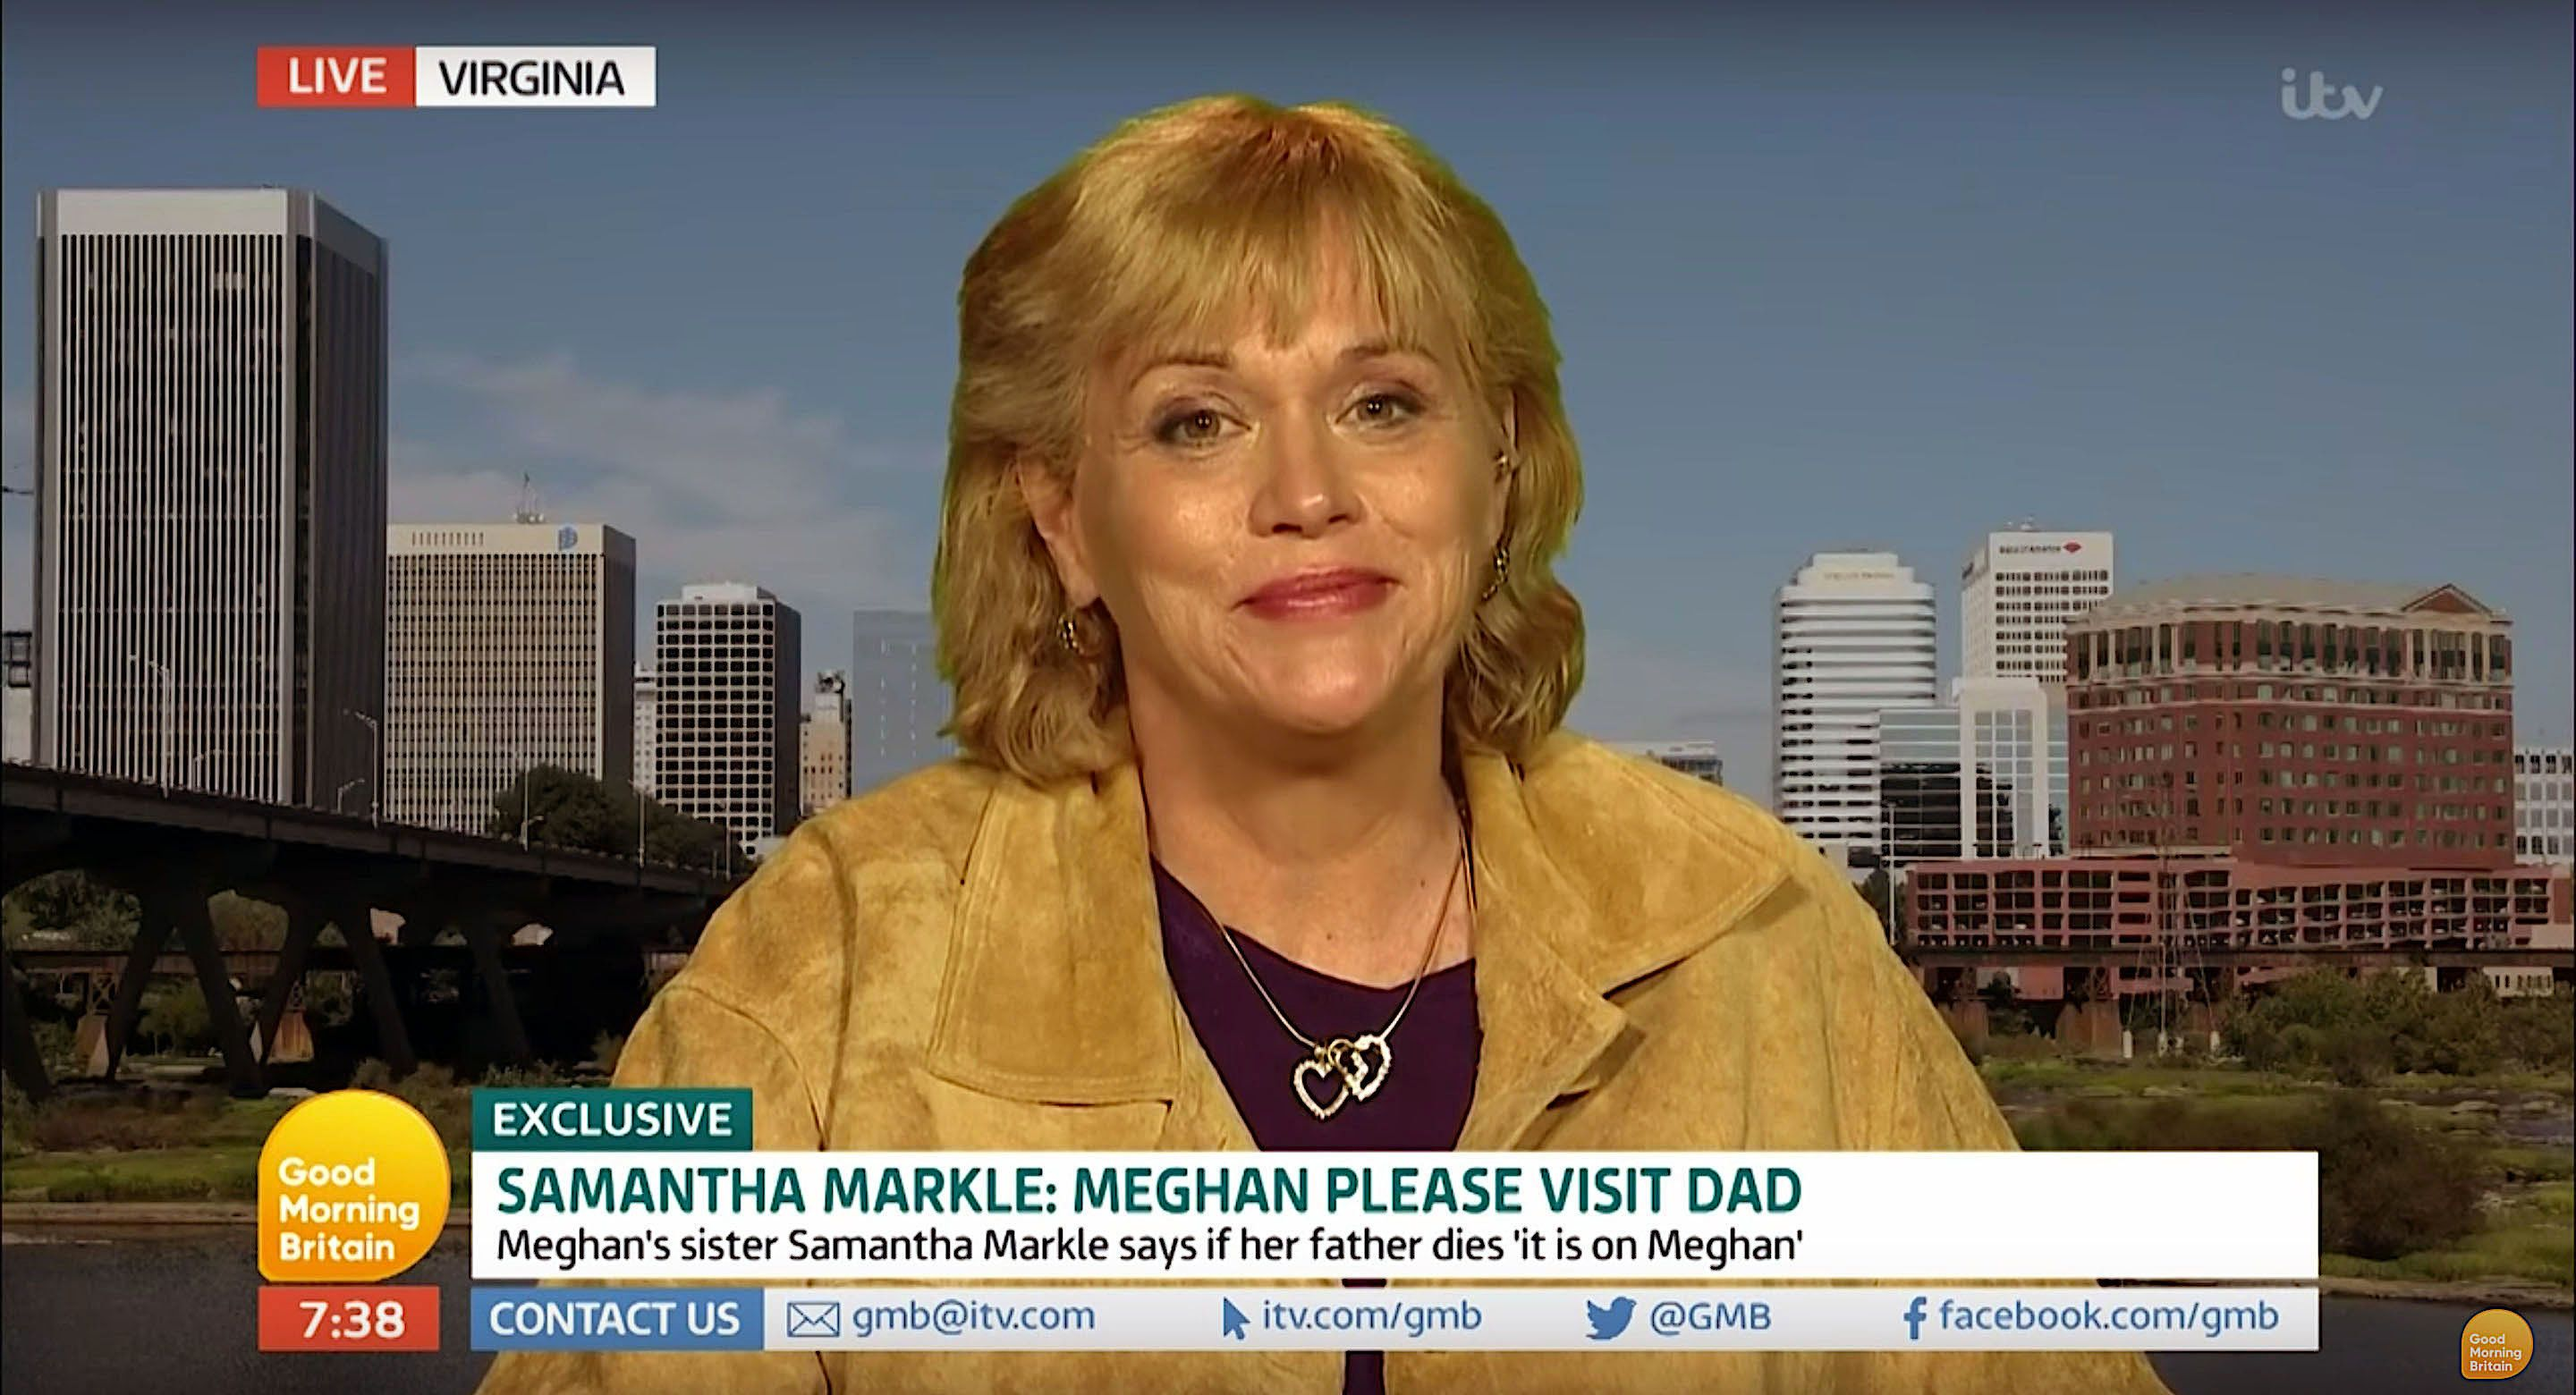 Samantha Markle appeared on Good Morning Britain to urge her half-sister Meghan Markle to contact their father